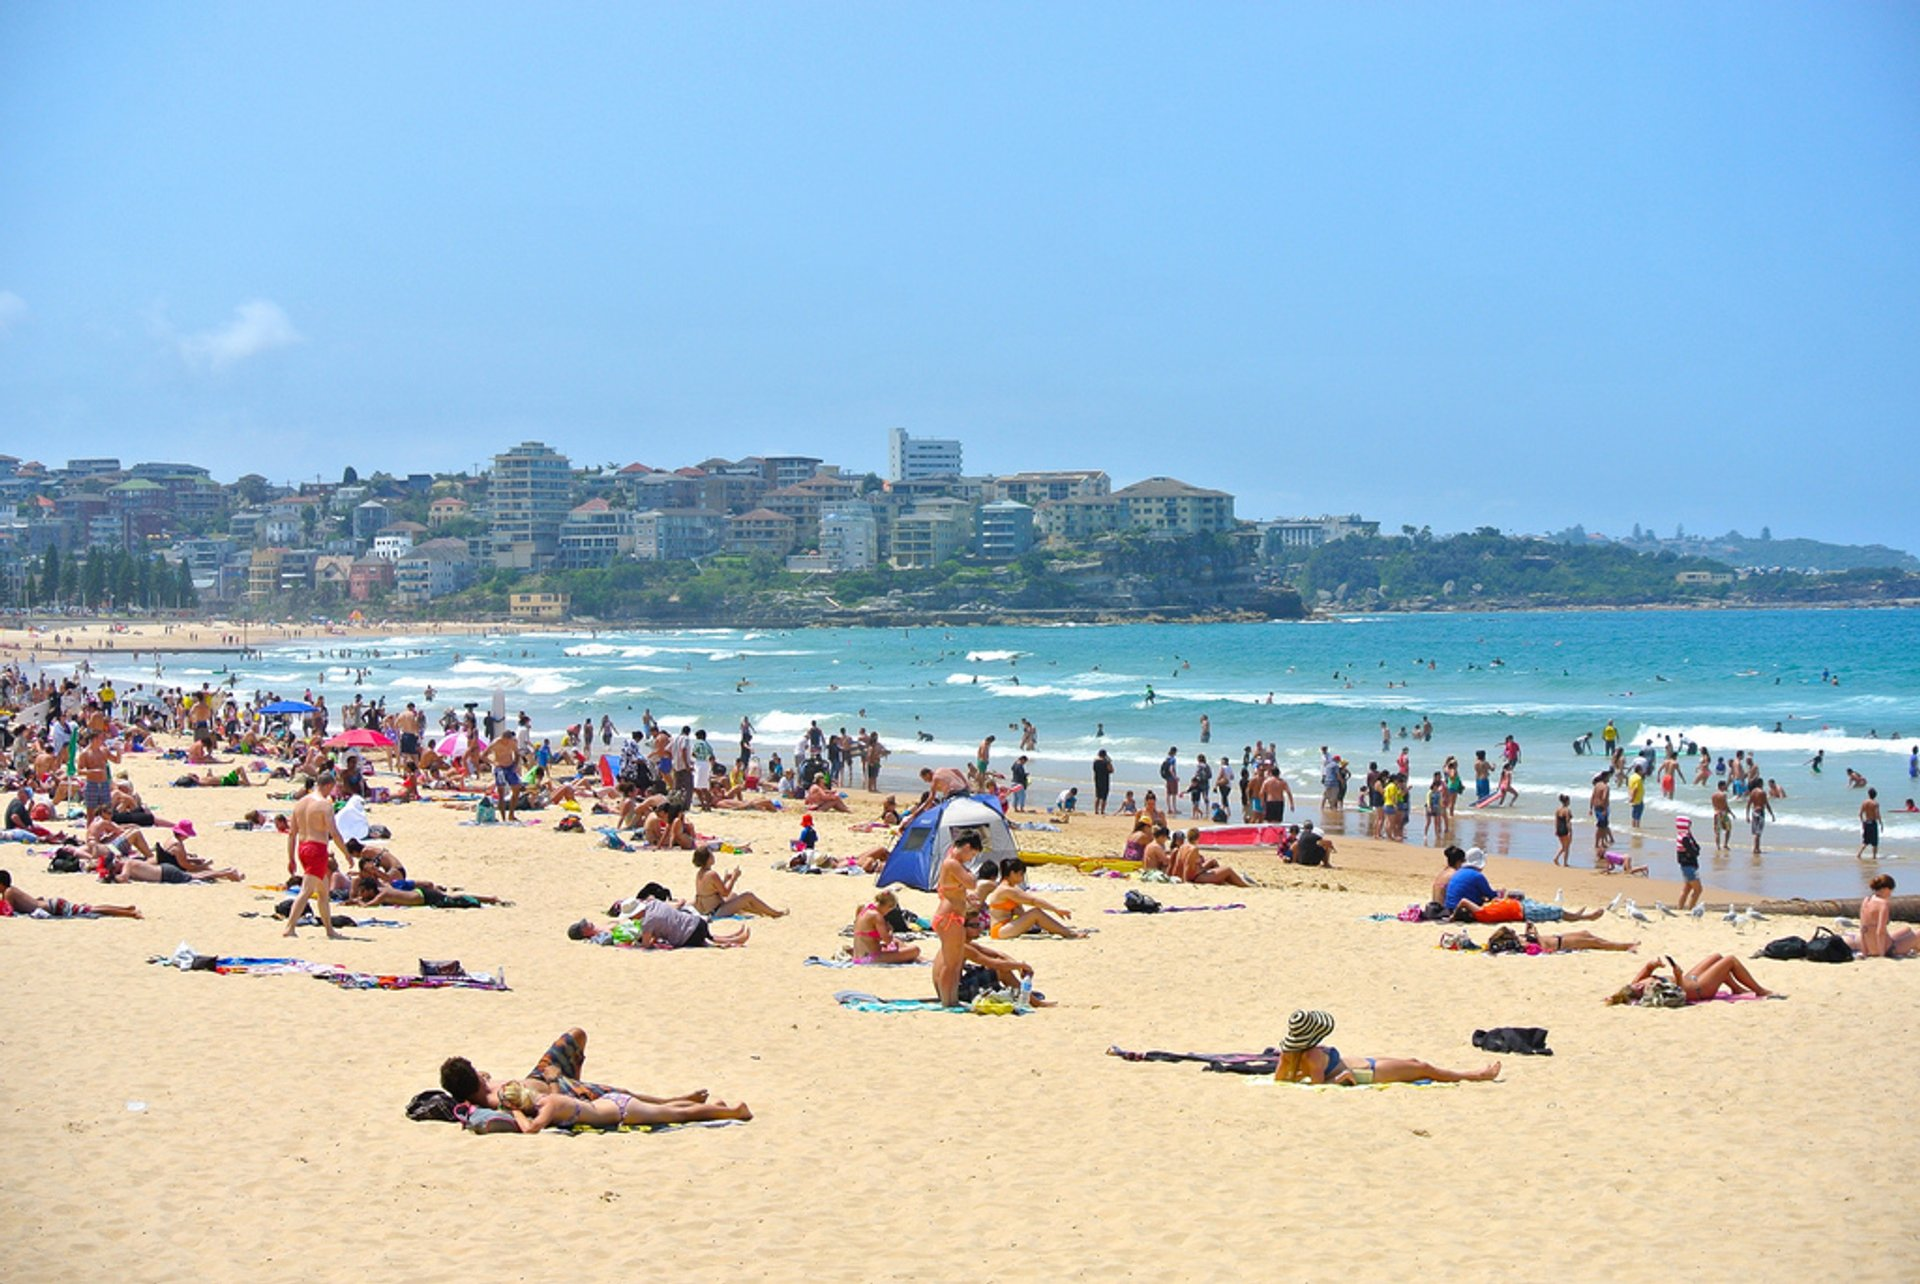 Manly Beach gets rather crowded in the summer months 2020